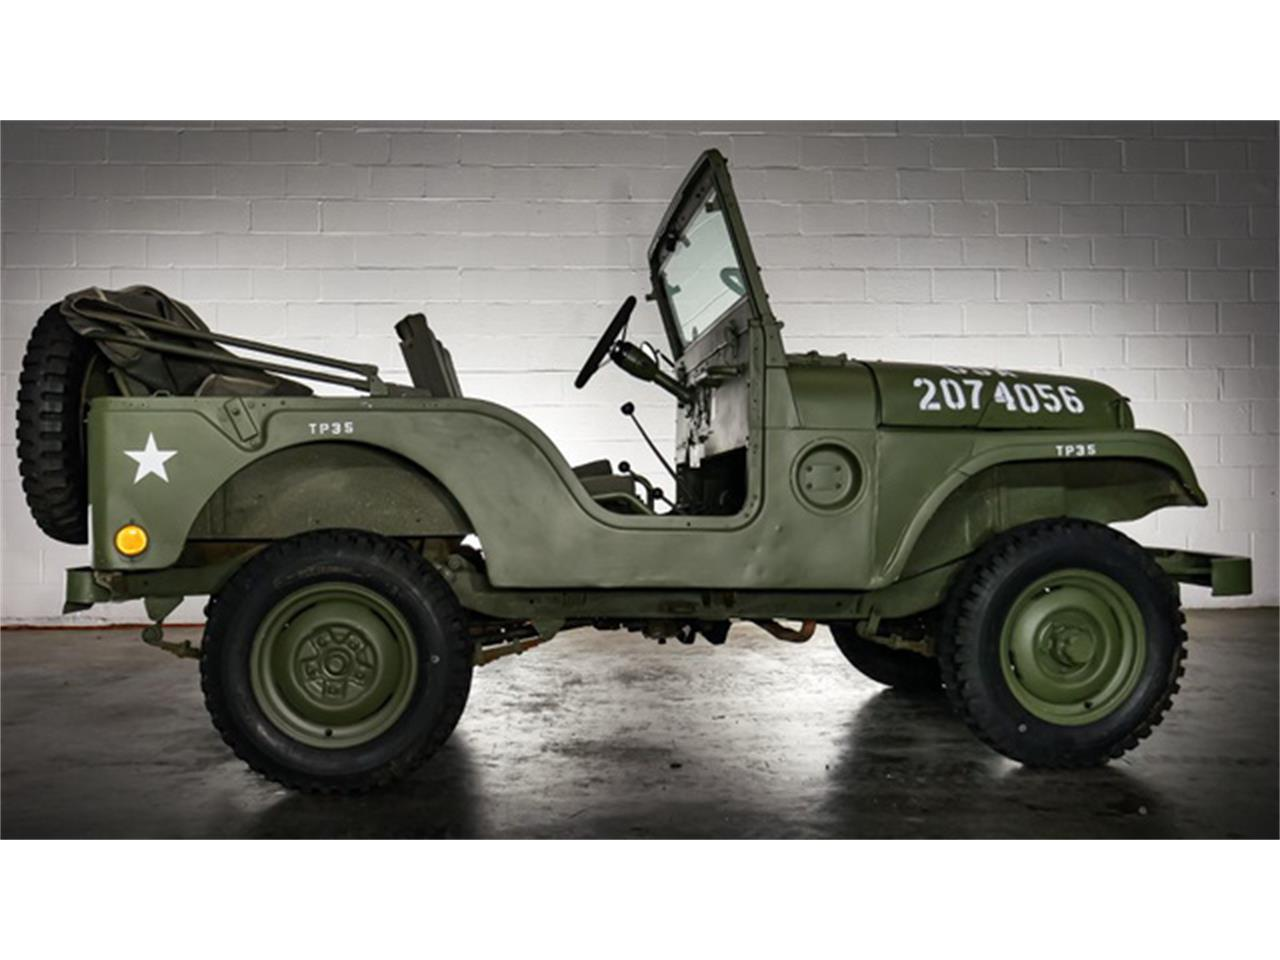 1954 willys jeep for sale classiccars.com cc-1412616